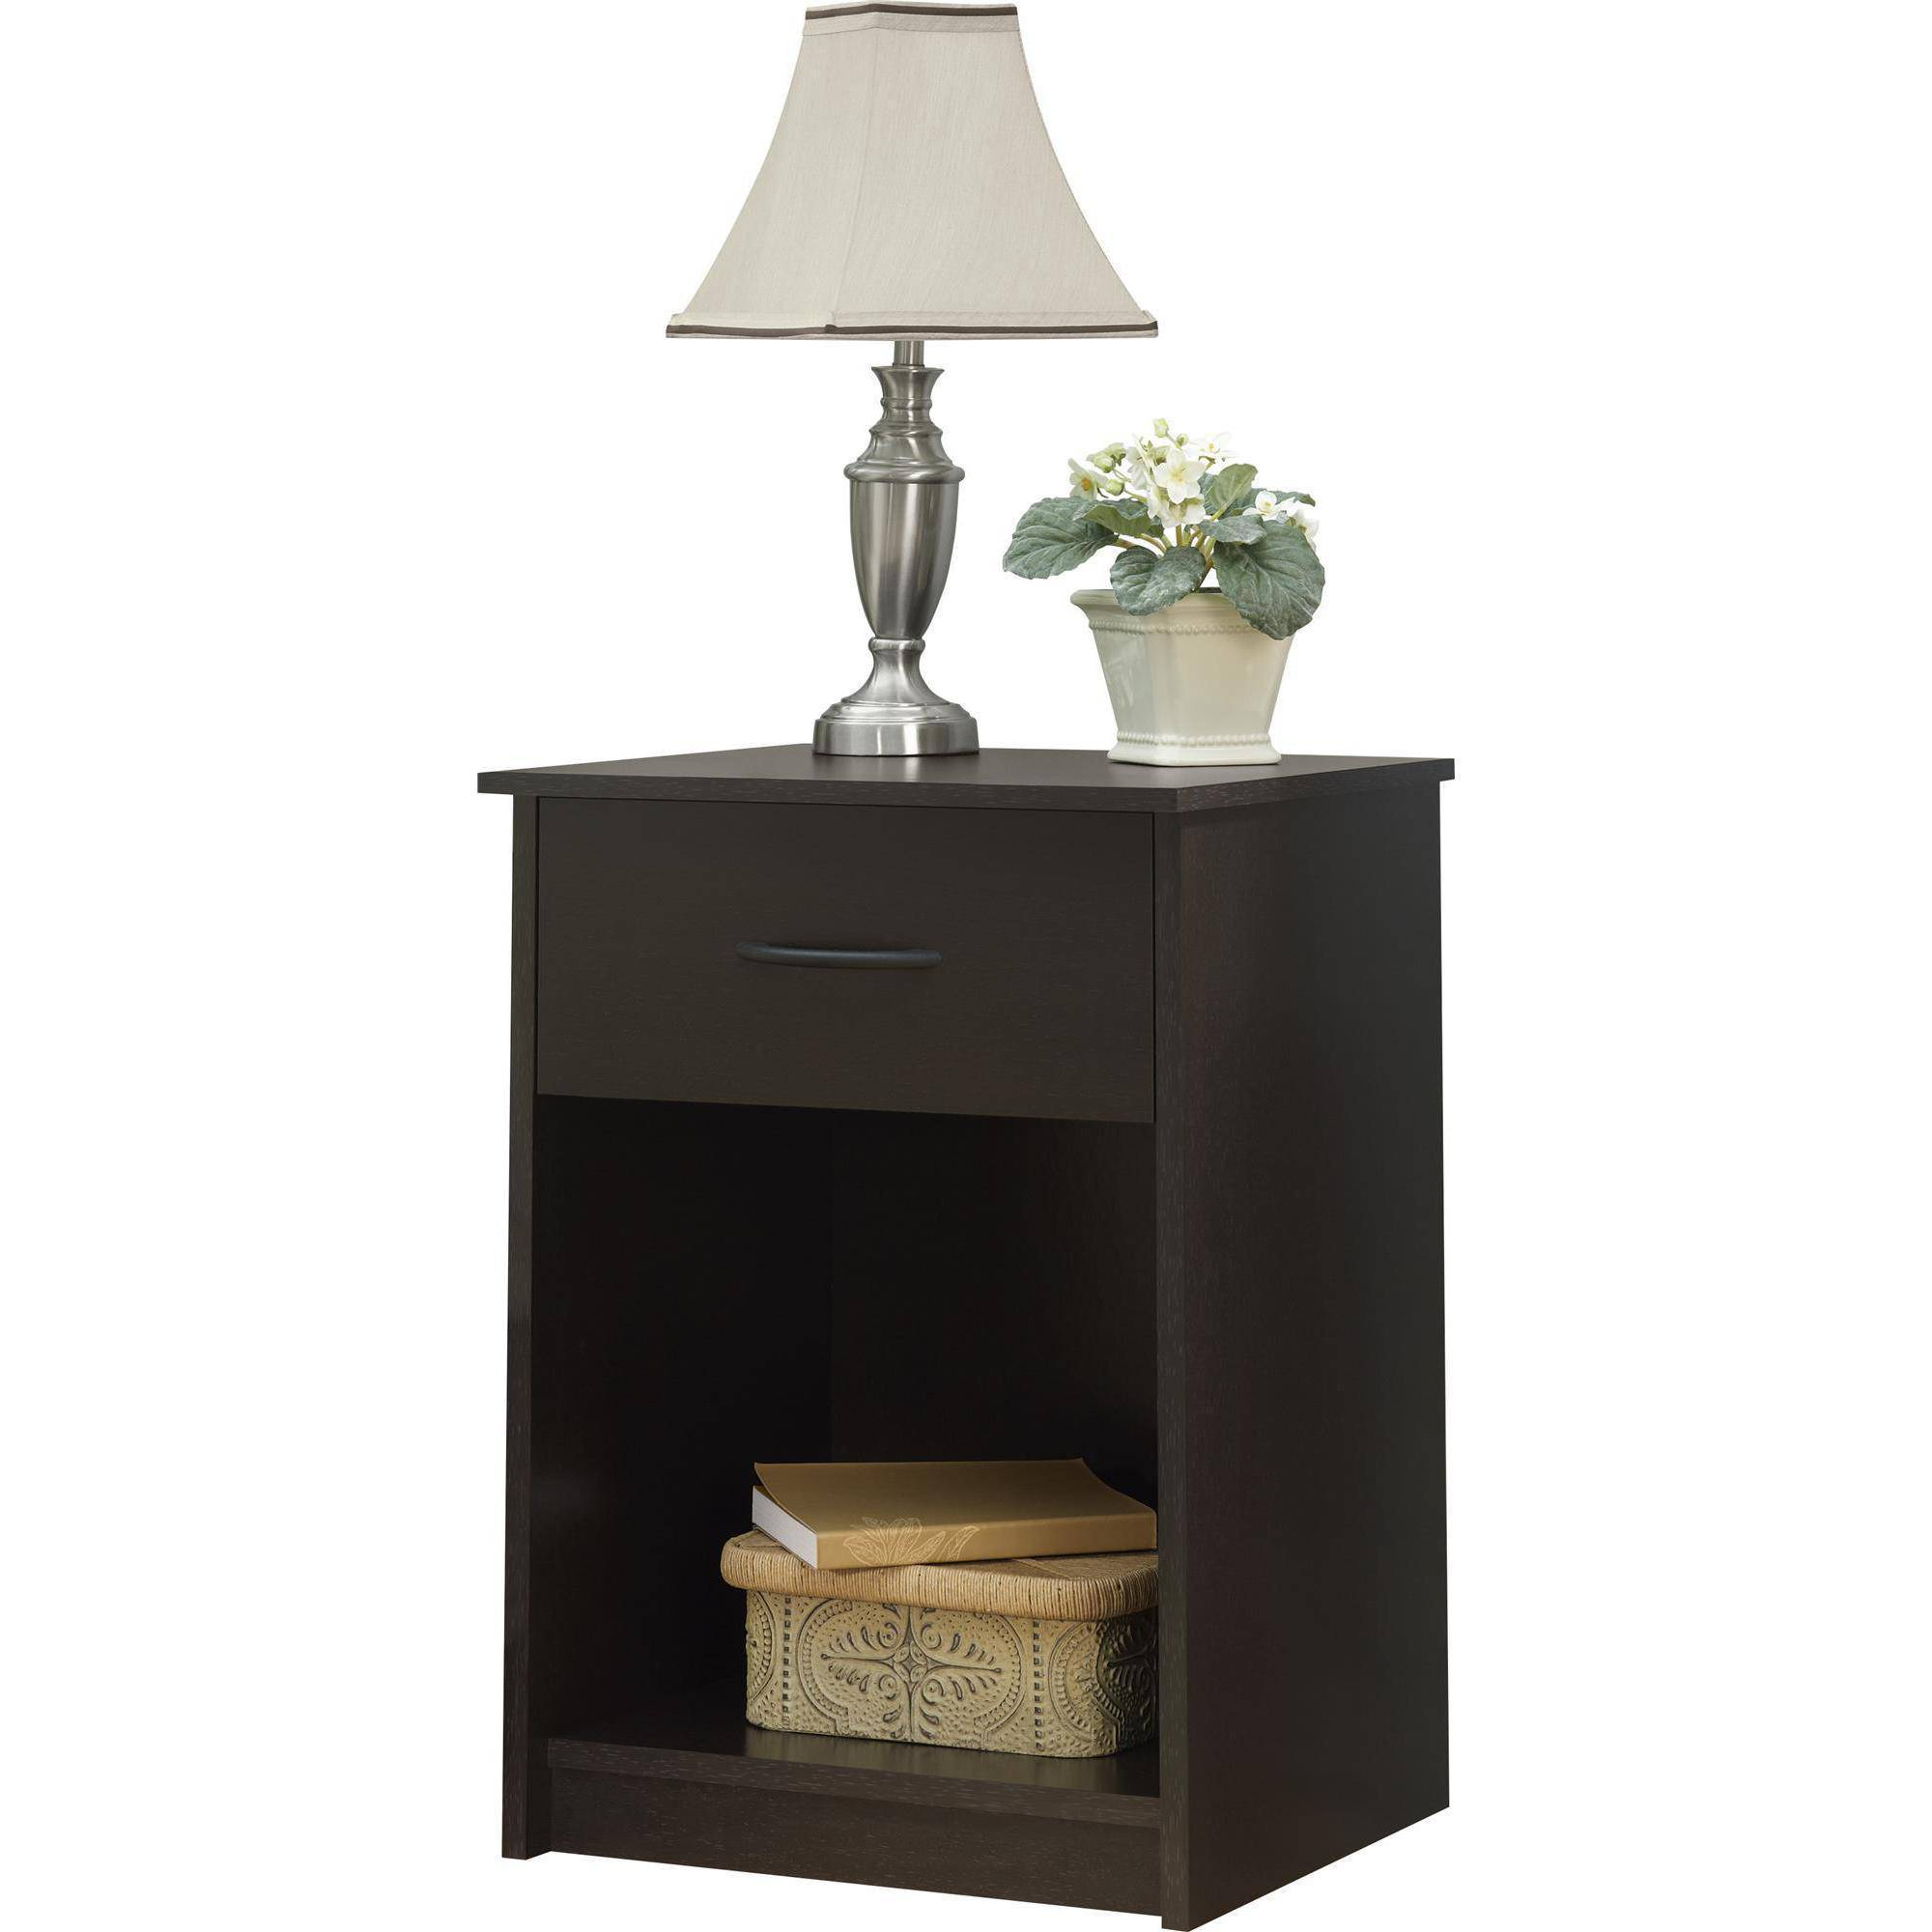 nightstand set bedroom end table drawer bedside shelf brown gray tables espresso cinnamon black iron accent best quality couches homemade dog kennel ideas grey round resin side